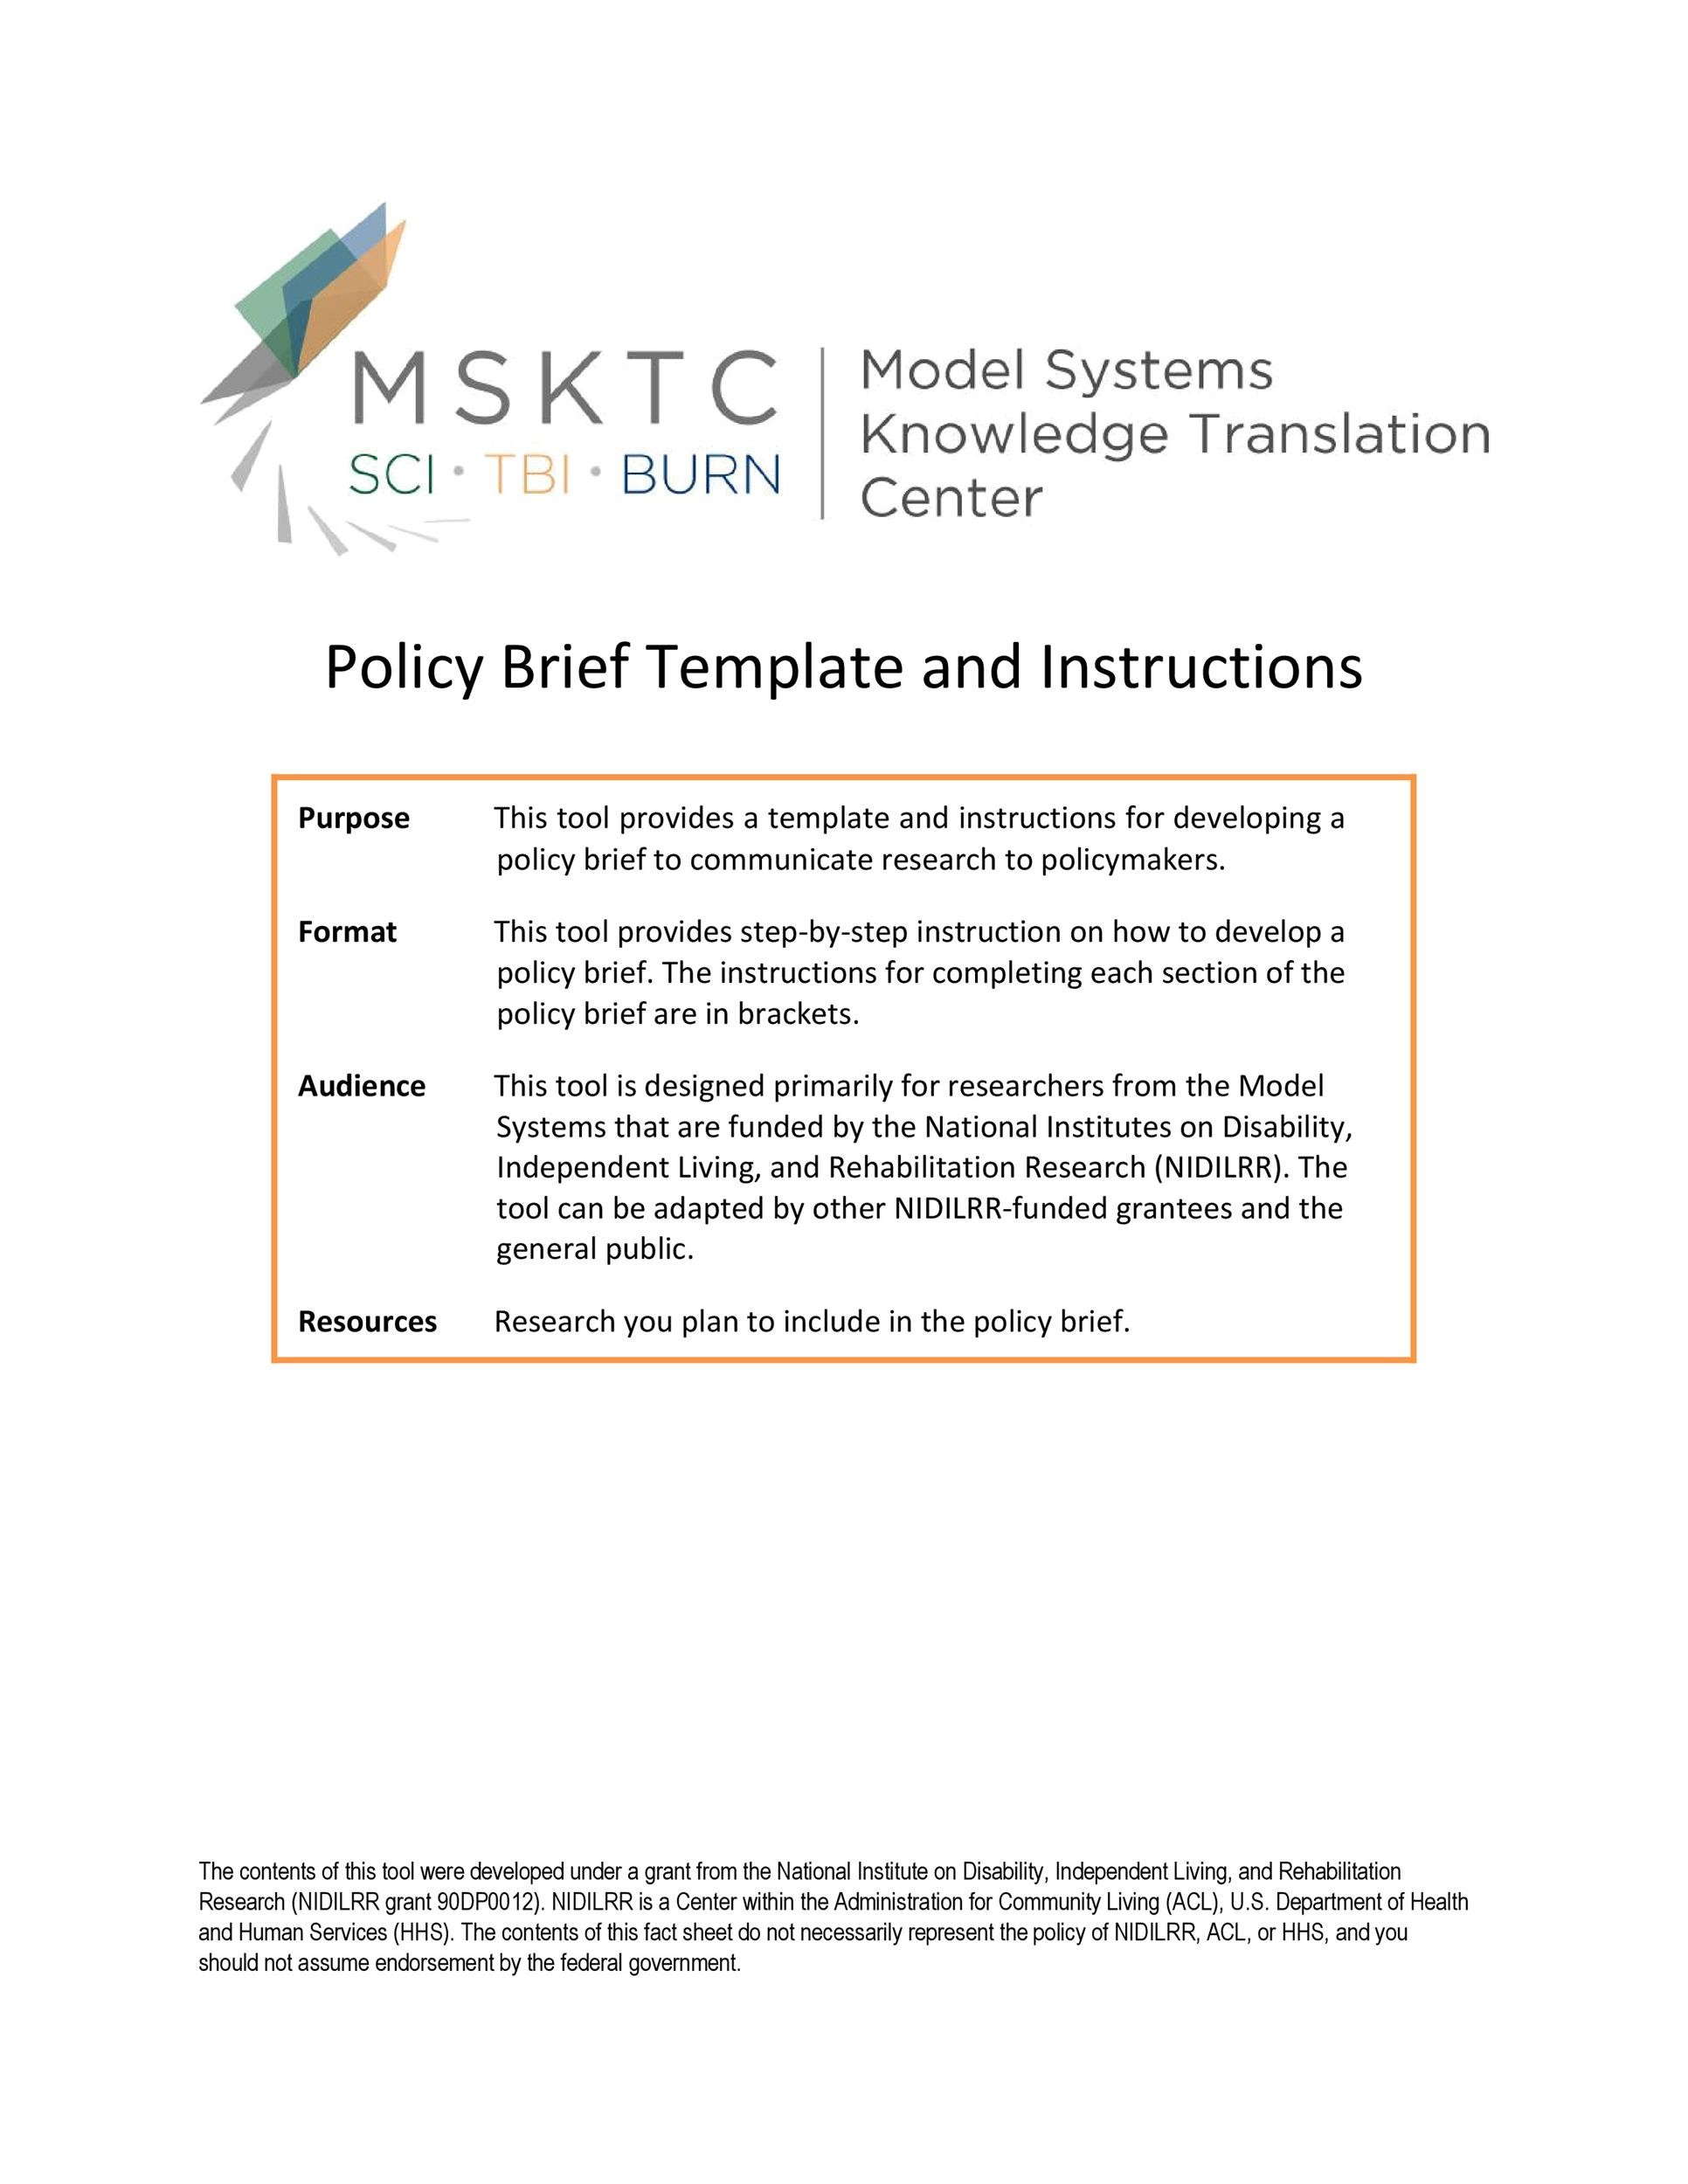 Free policy brief template 50